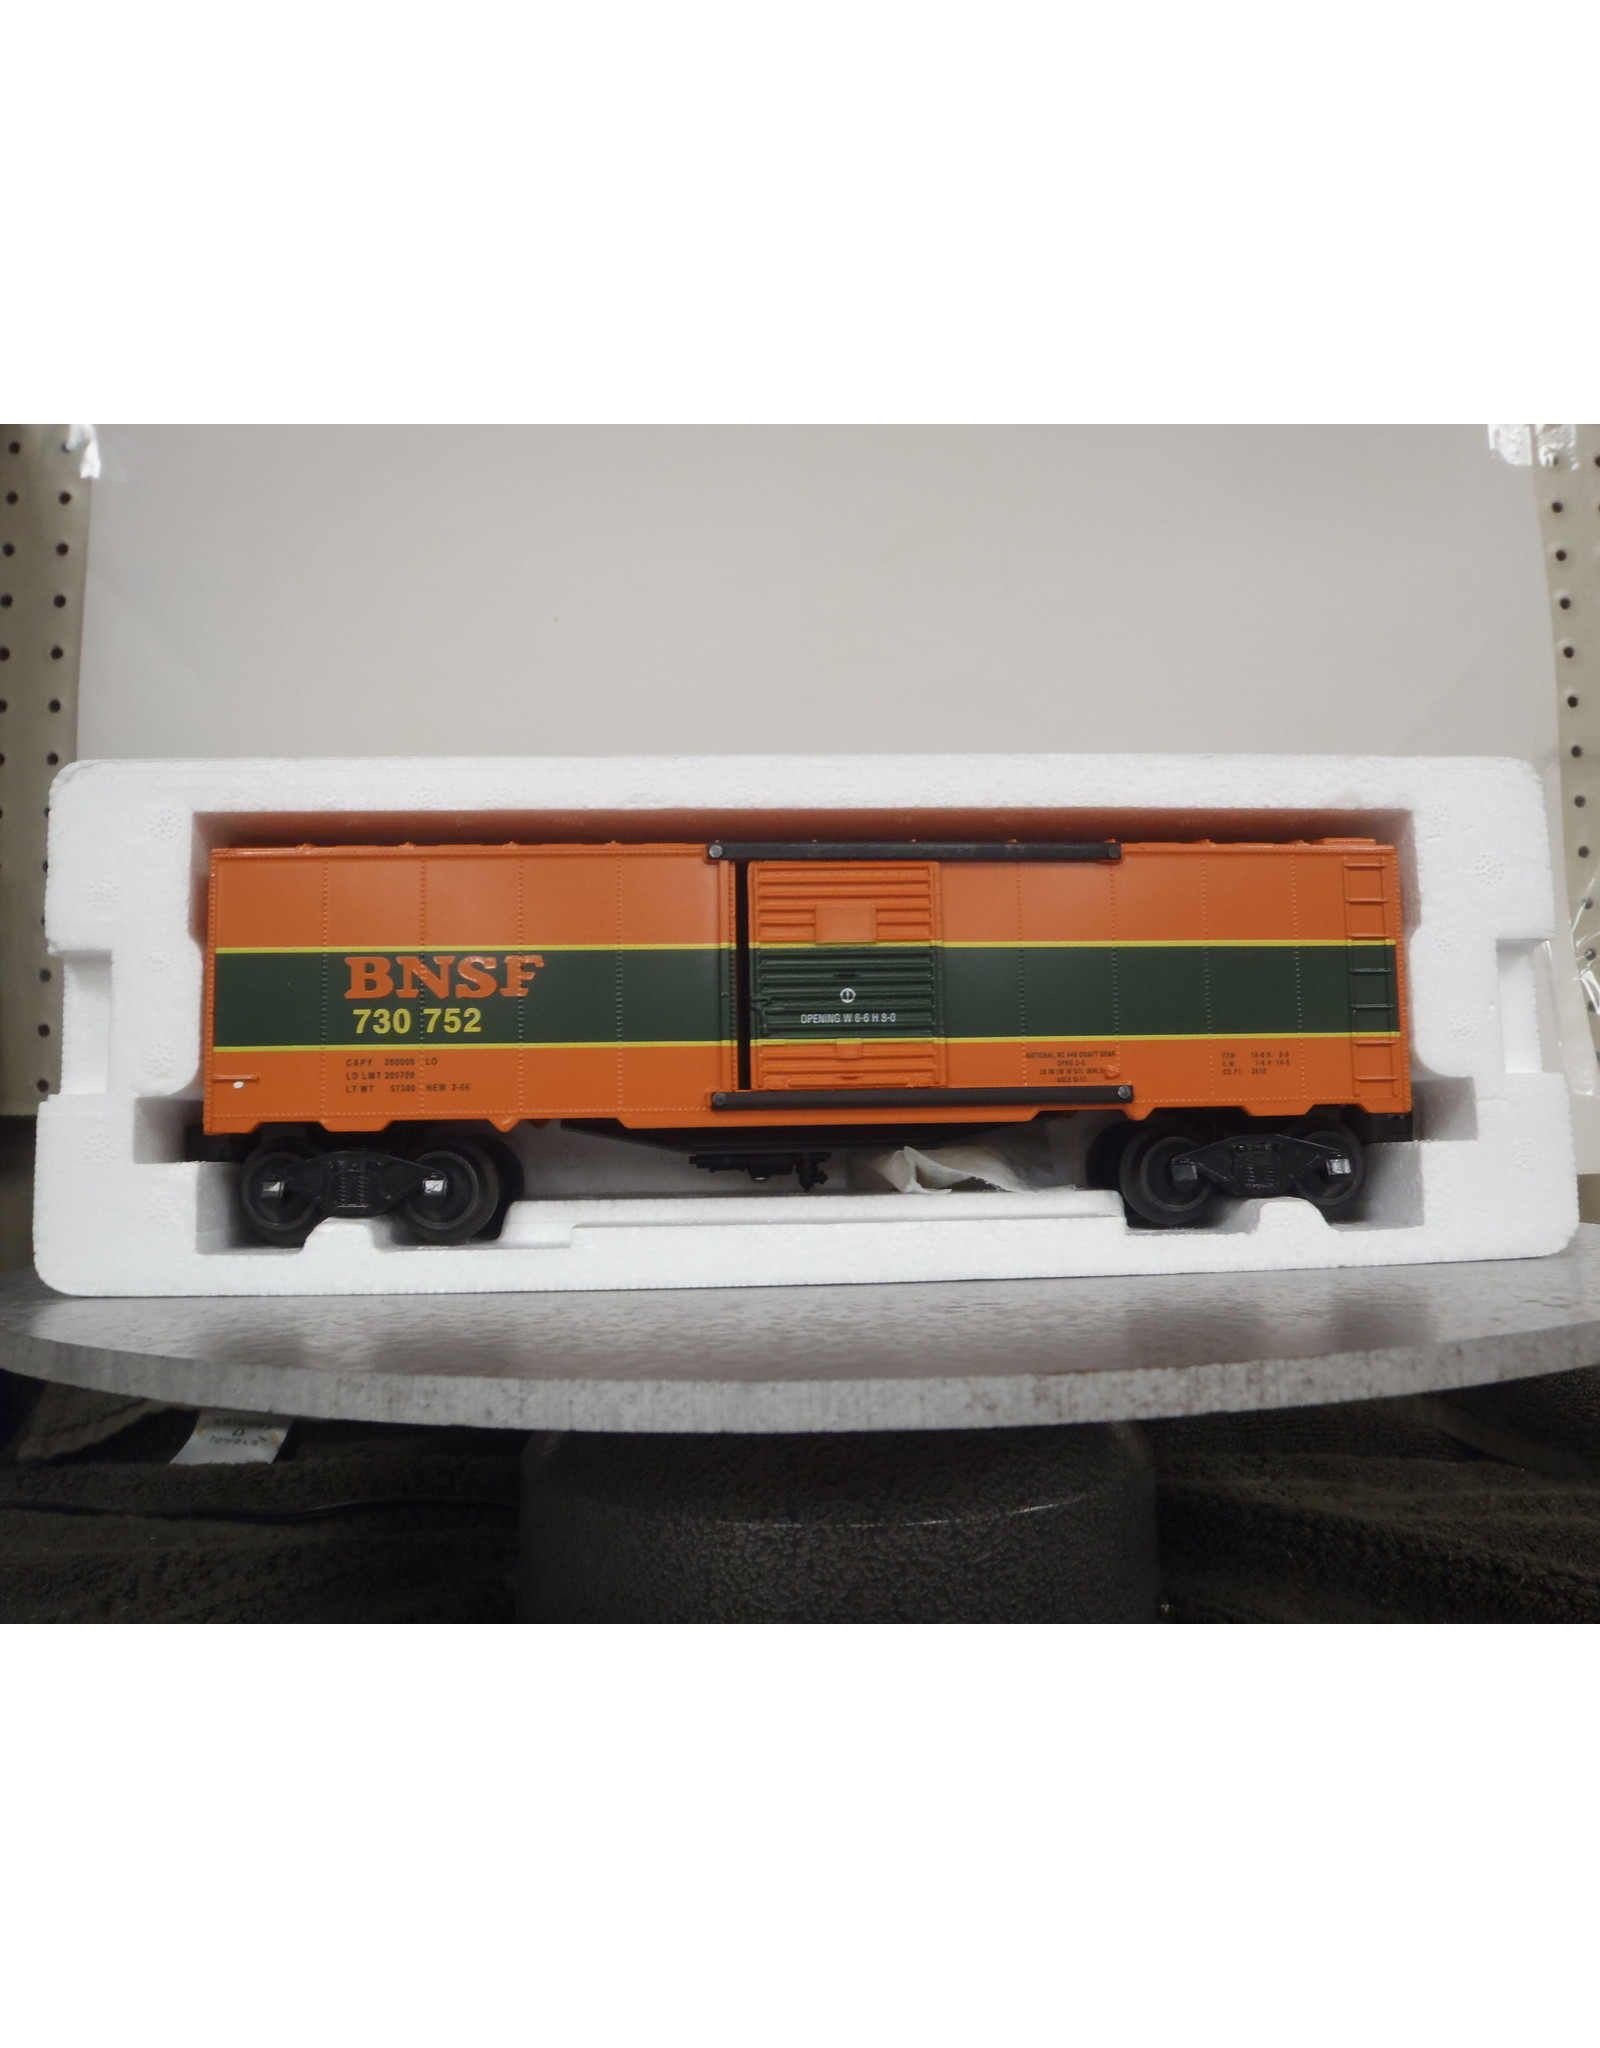 Williams Boxcar BNSF 730752